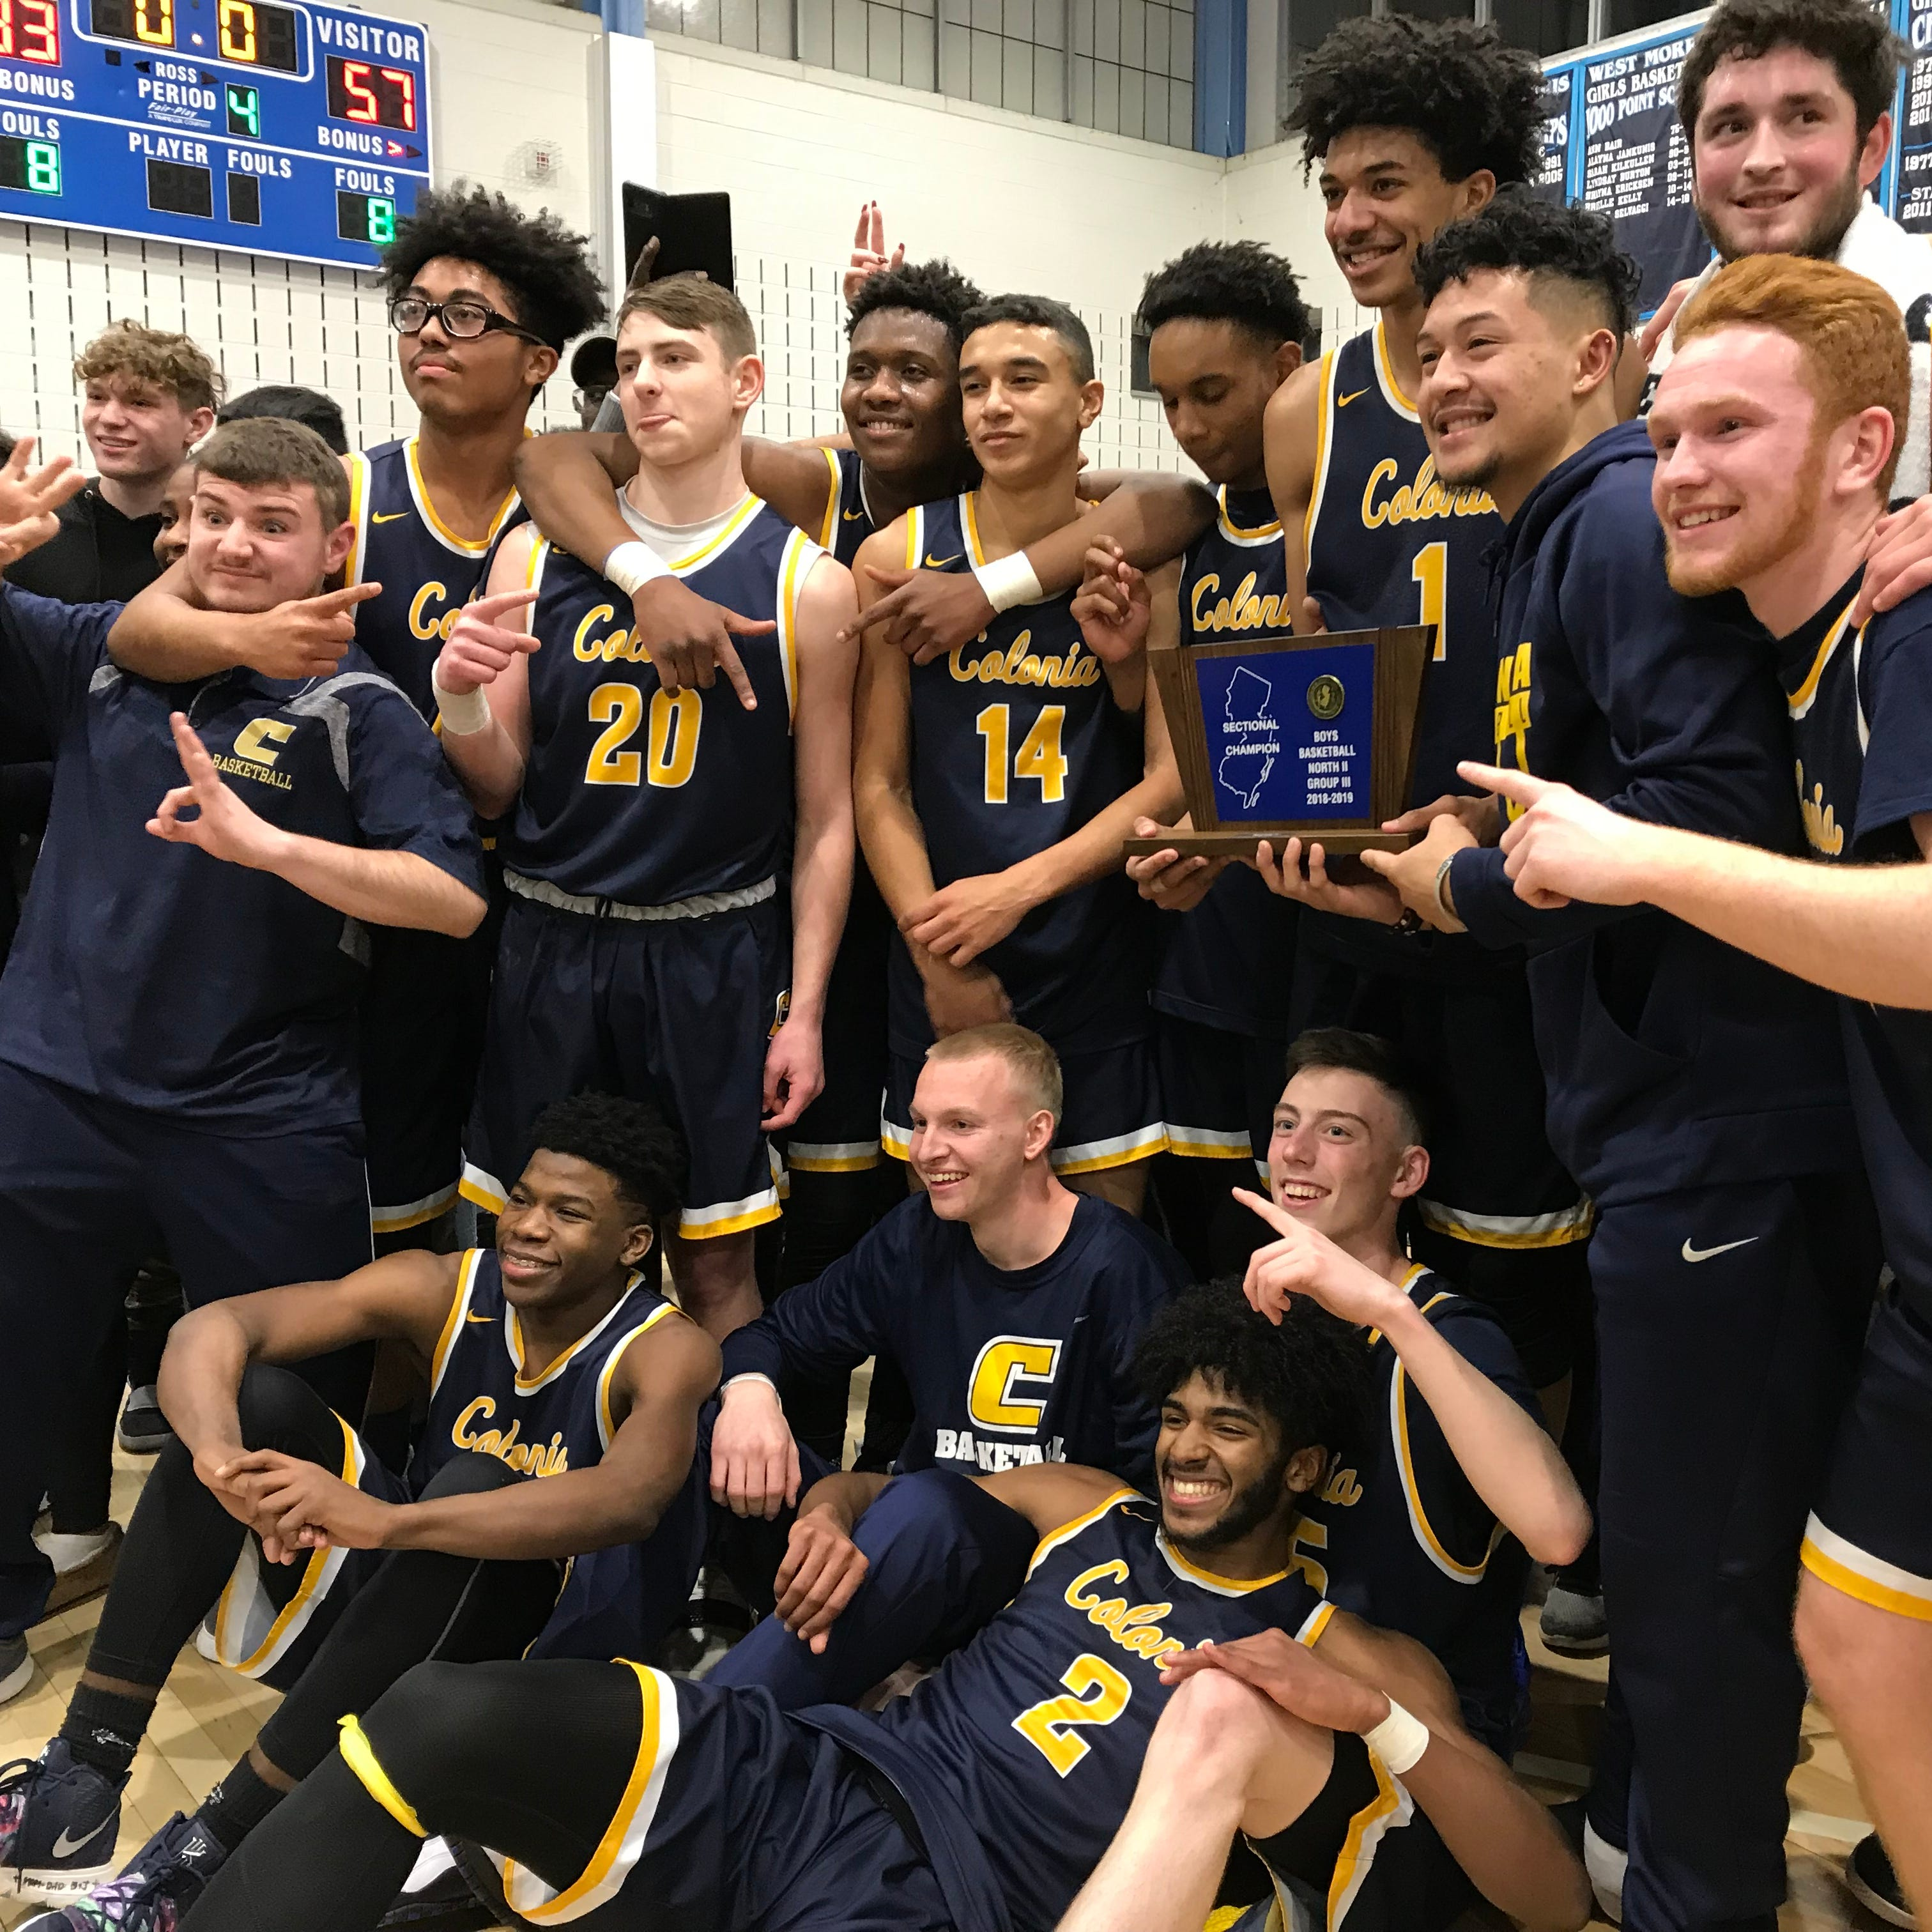 Boys Basketball: Colonia wins North 2 Group III title